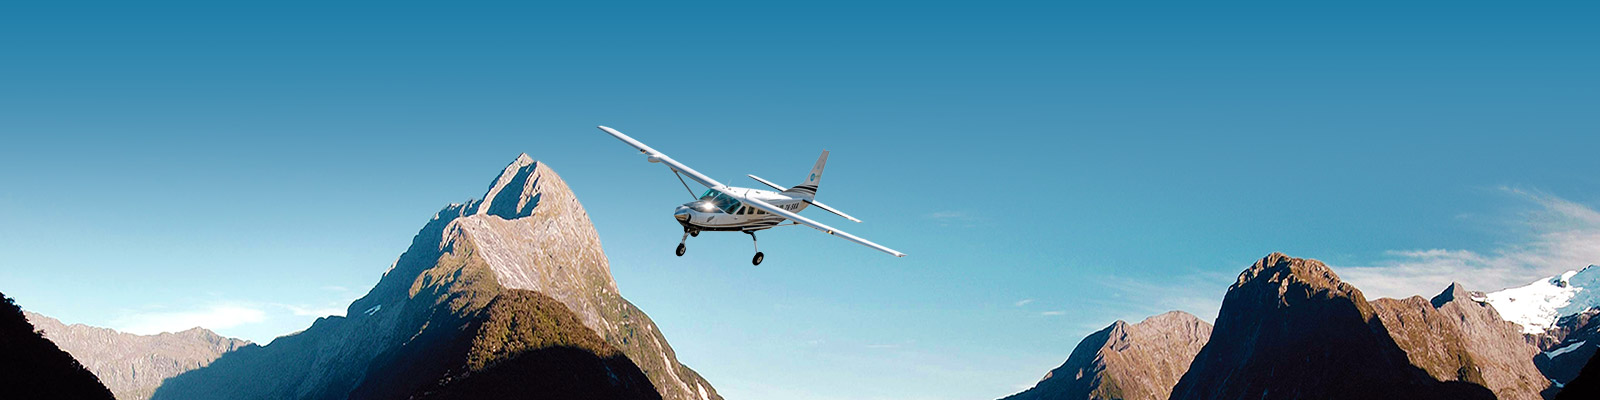 Milford Sound Flights